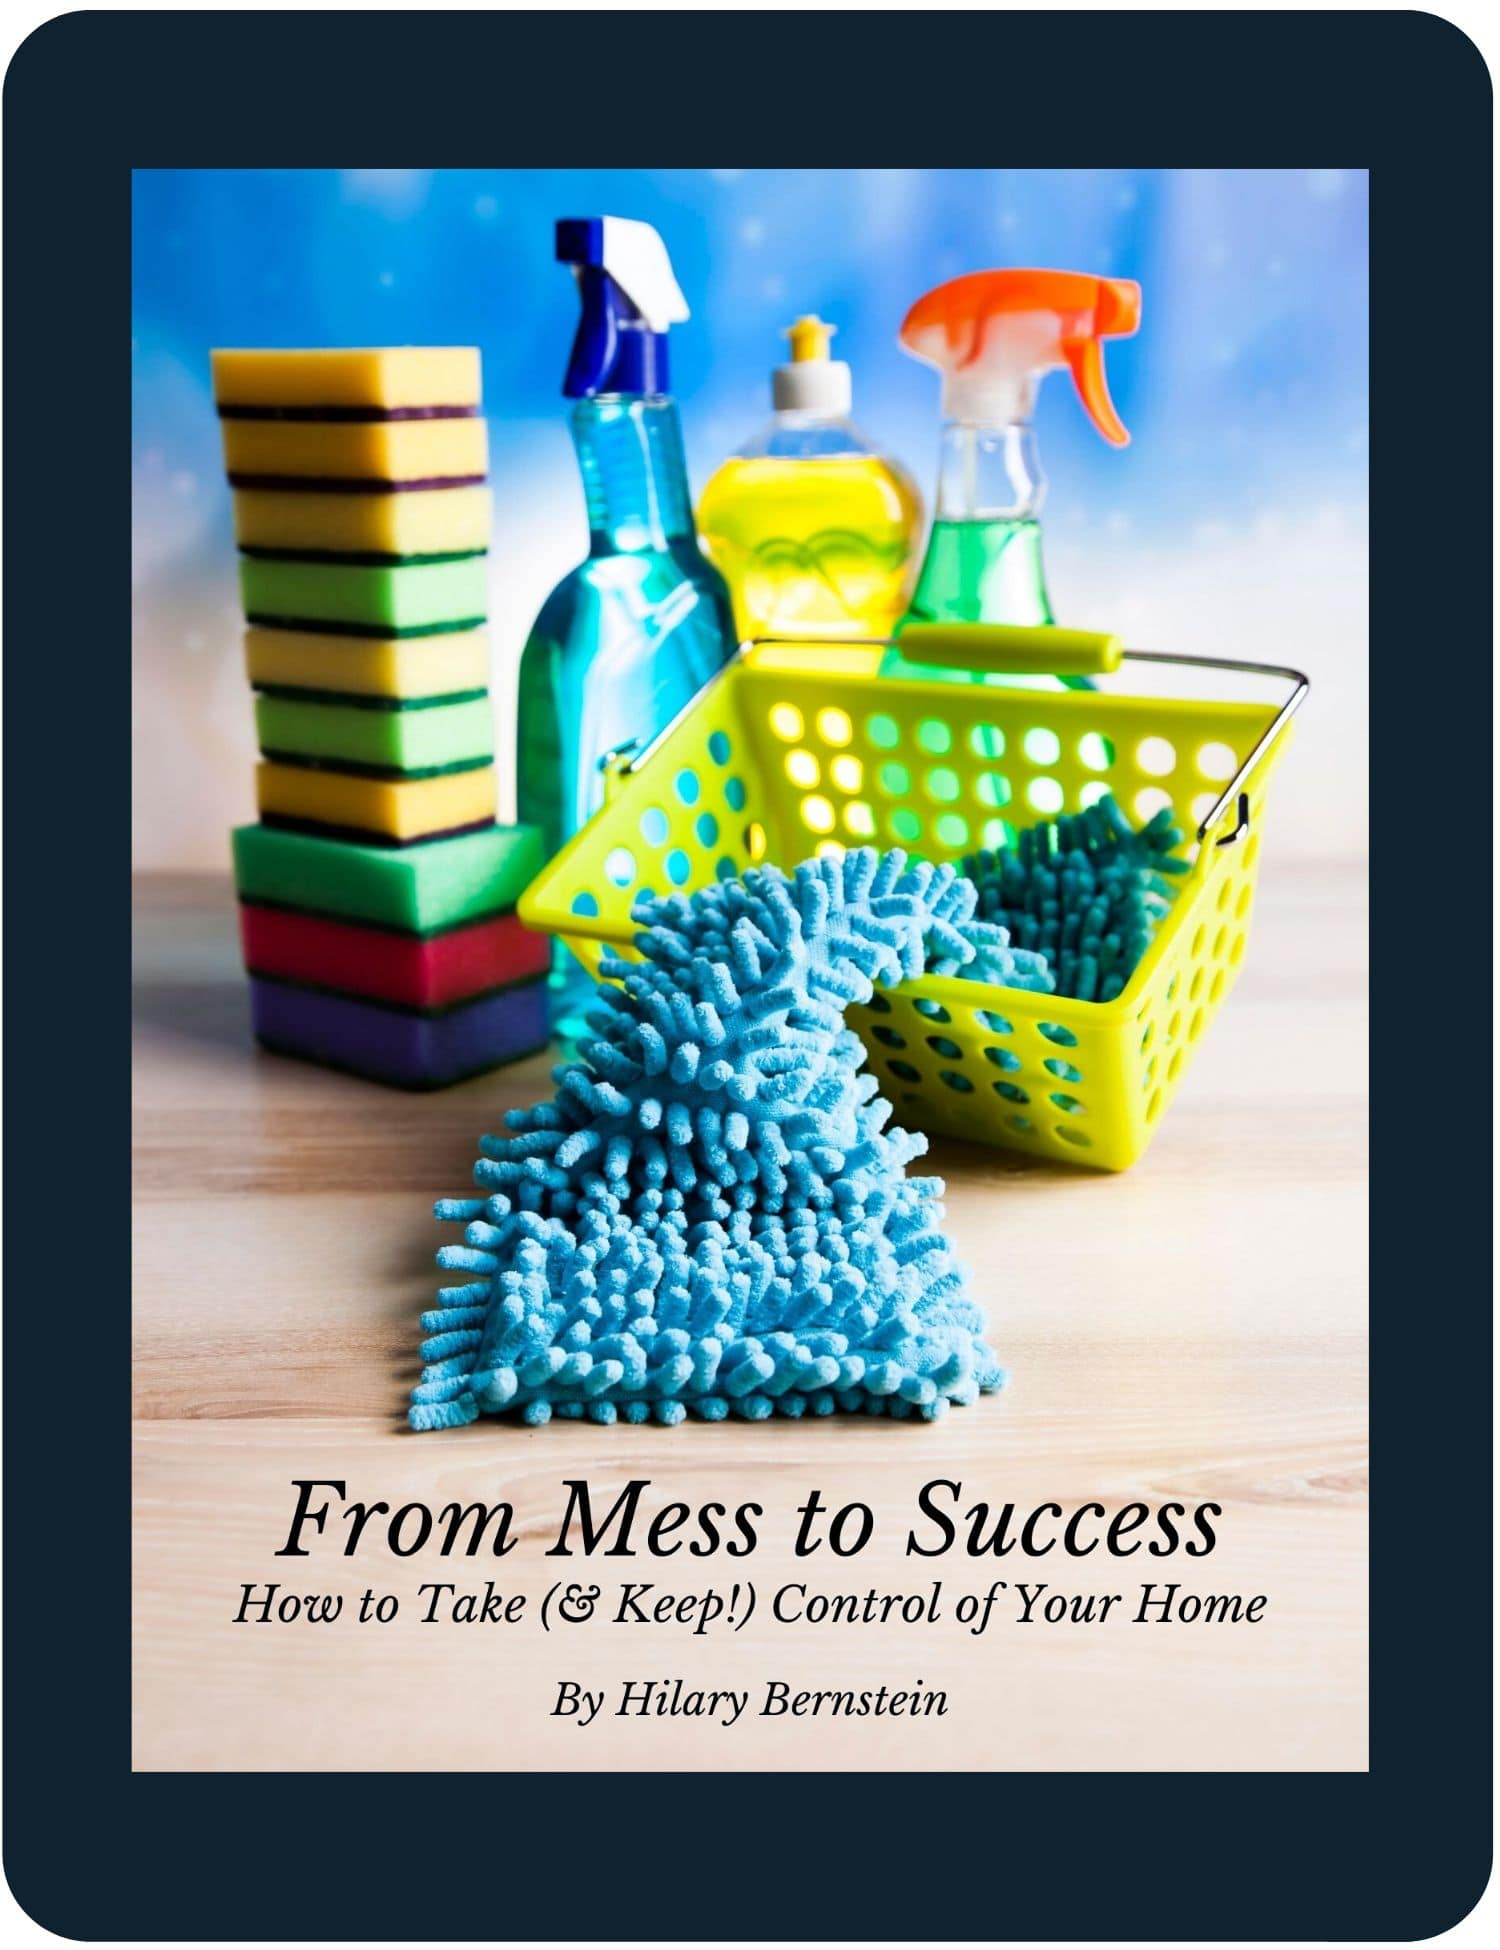 Tablet with From Mess to Success eBook